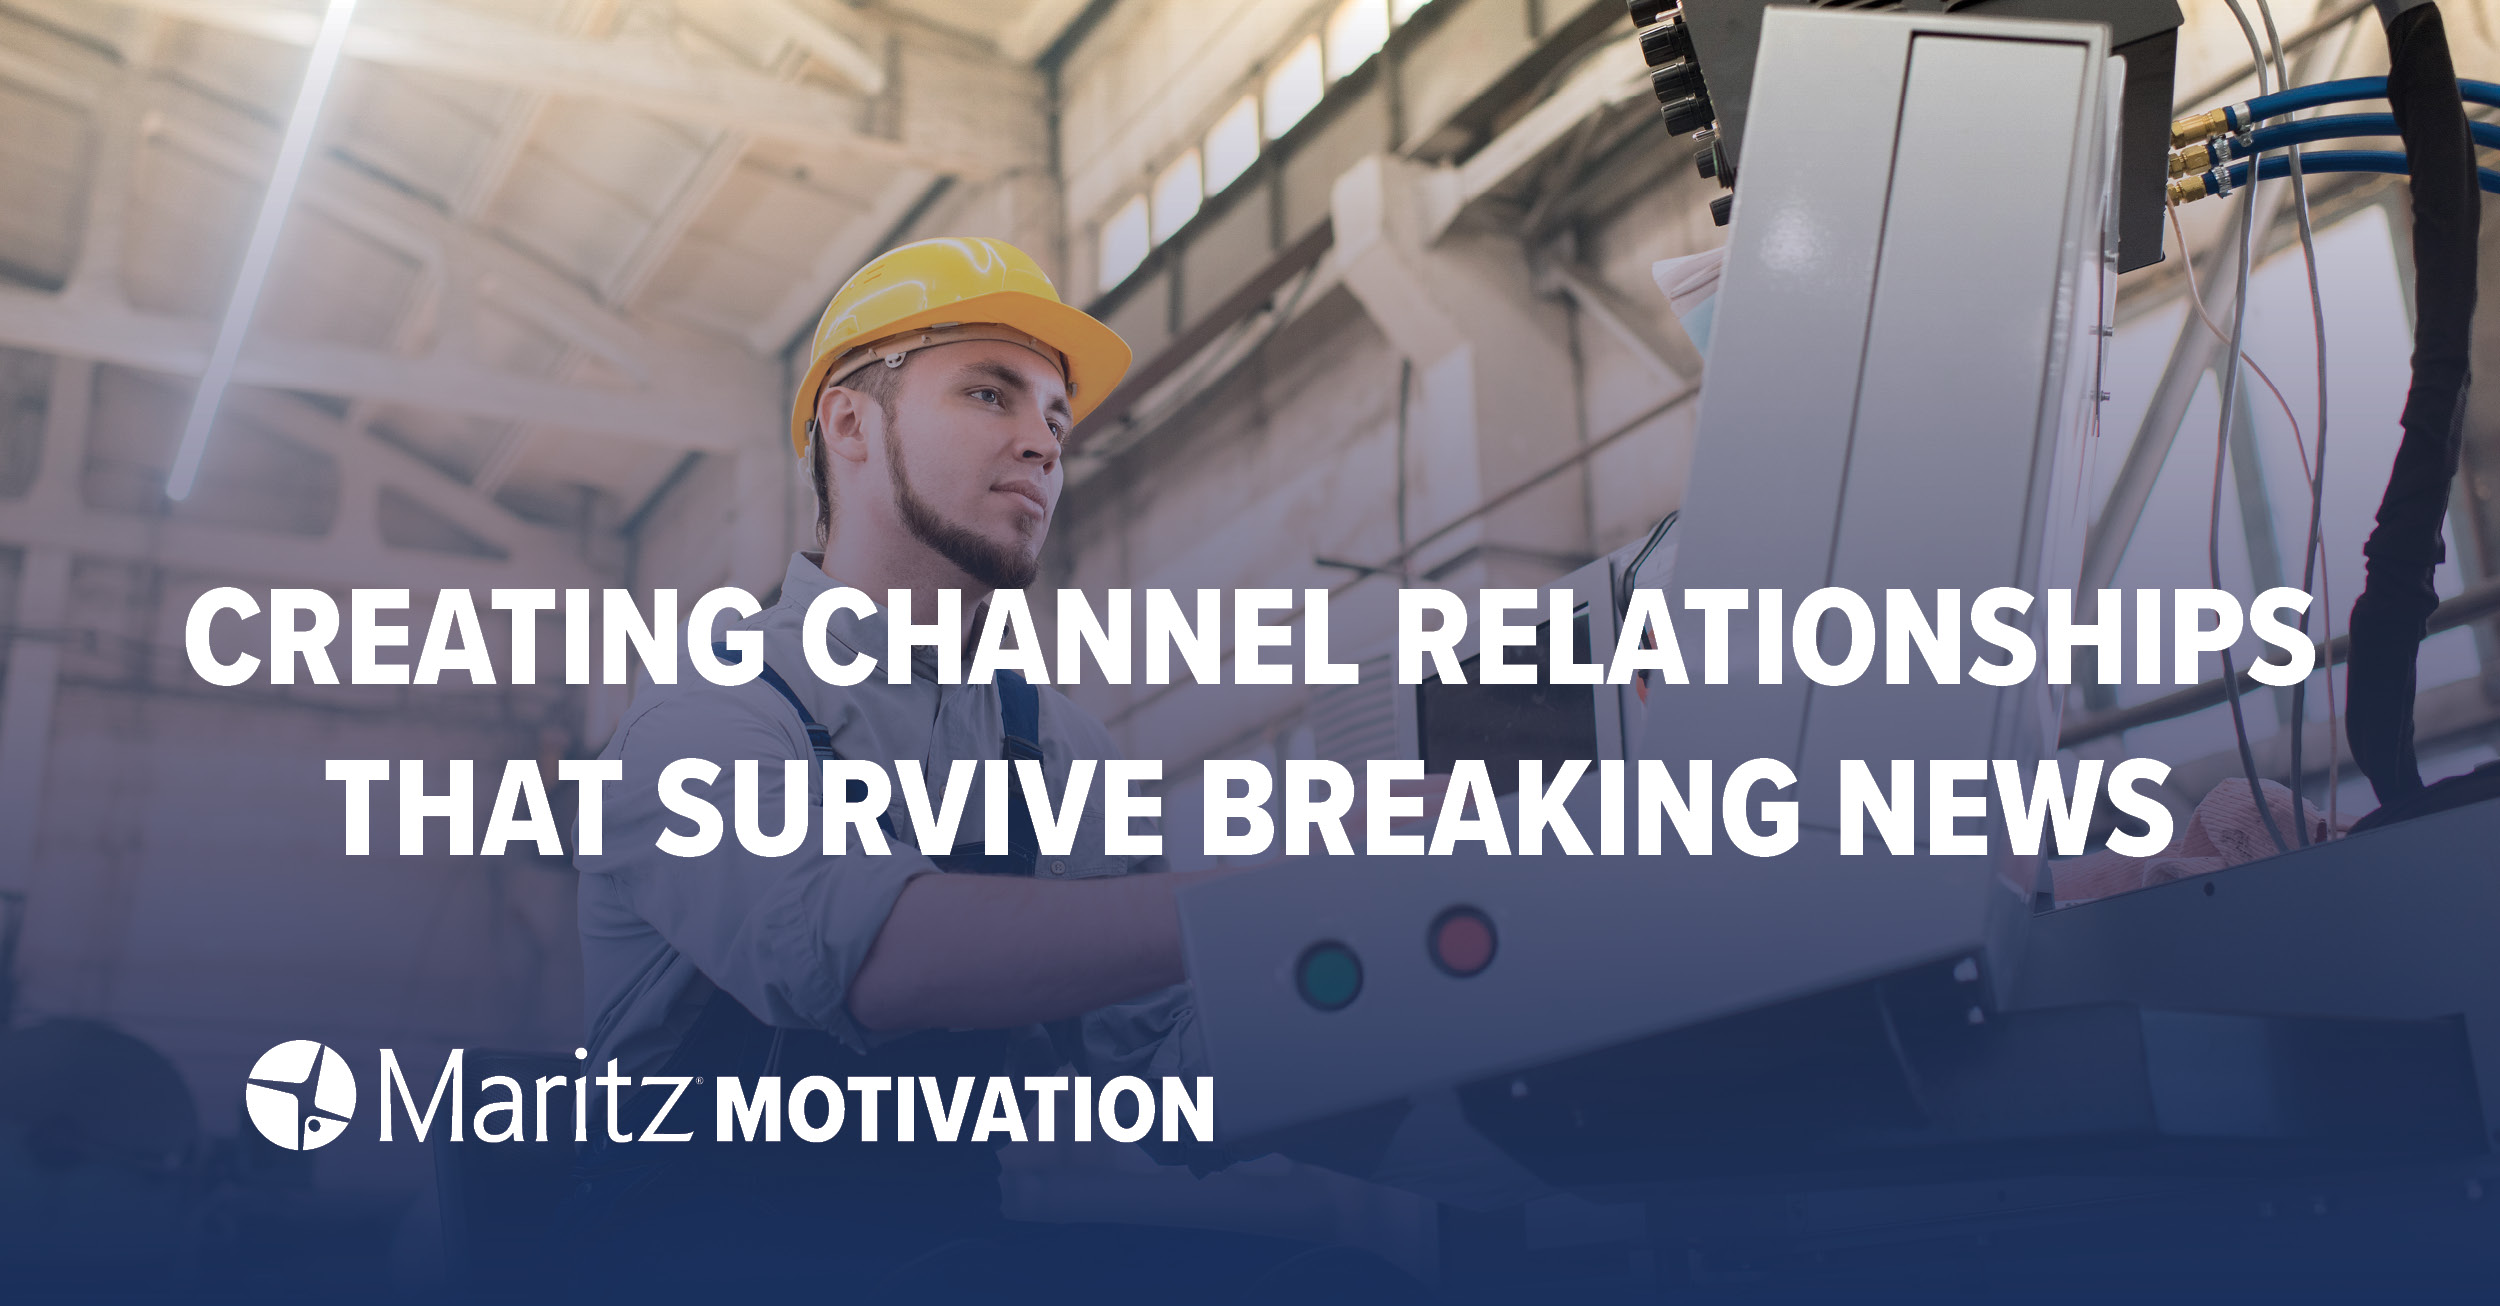 Creating Channel Relationships that Survive Breaking News